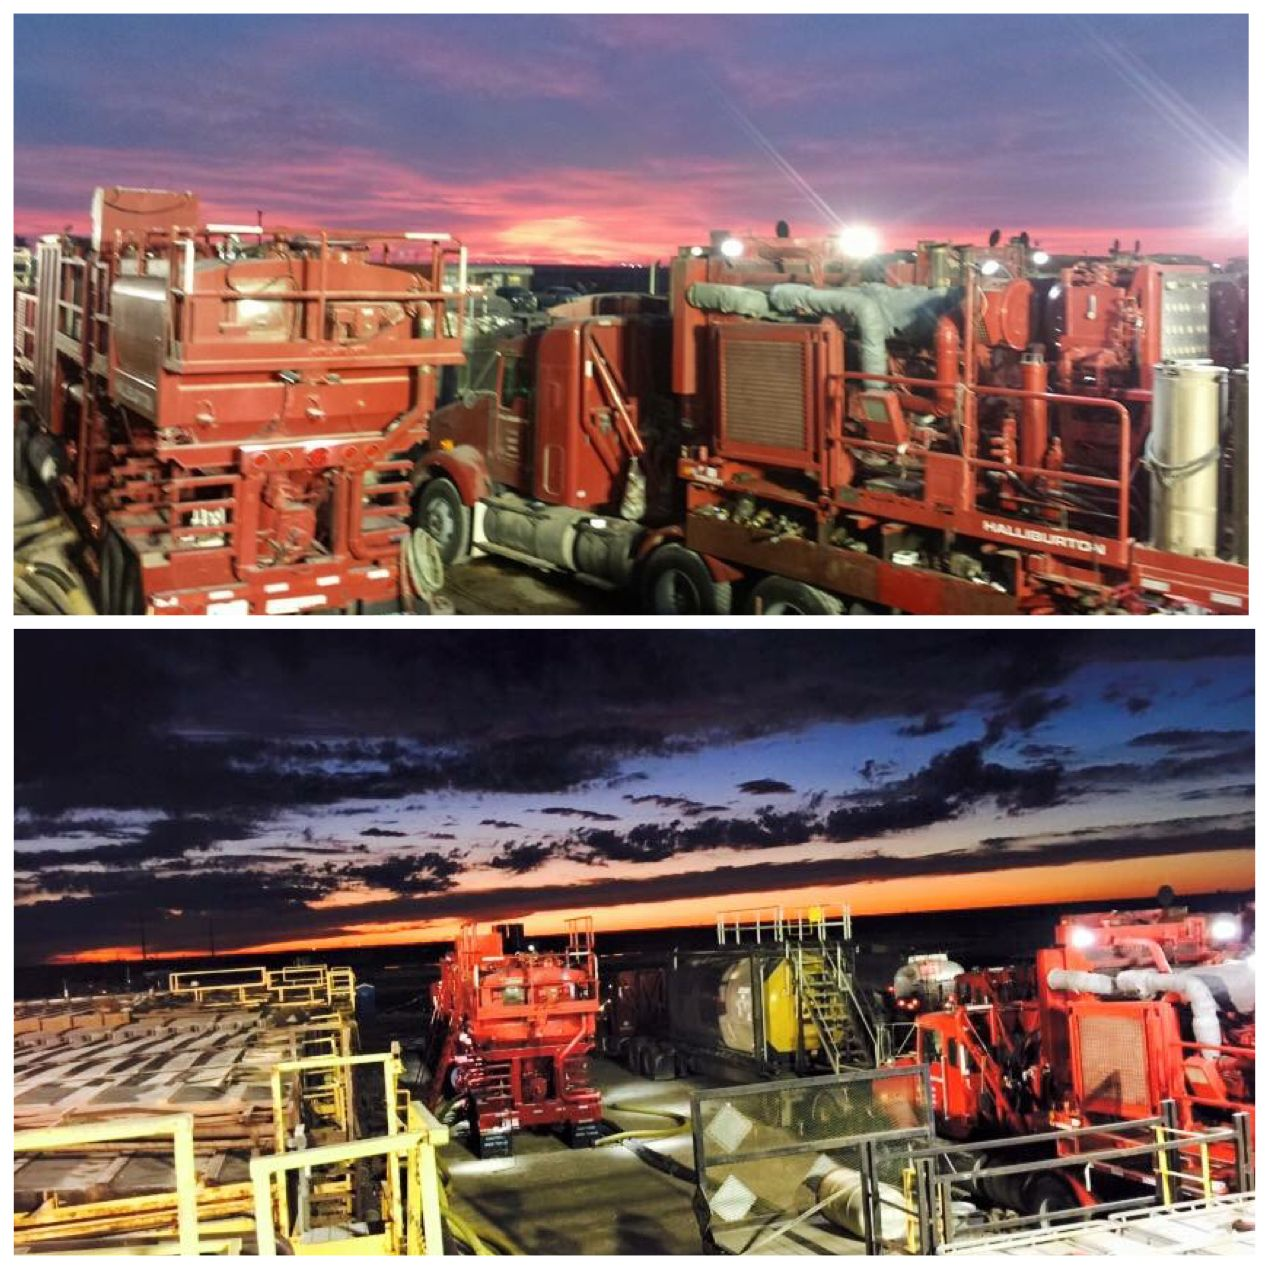 Pin By Russ Sharp On Halliburton Energy Services Oilfield Drilling Rig Oil And Gas